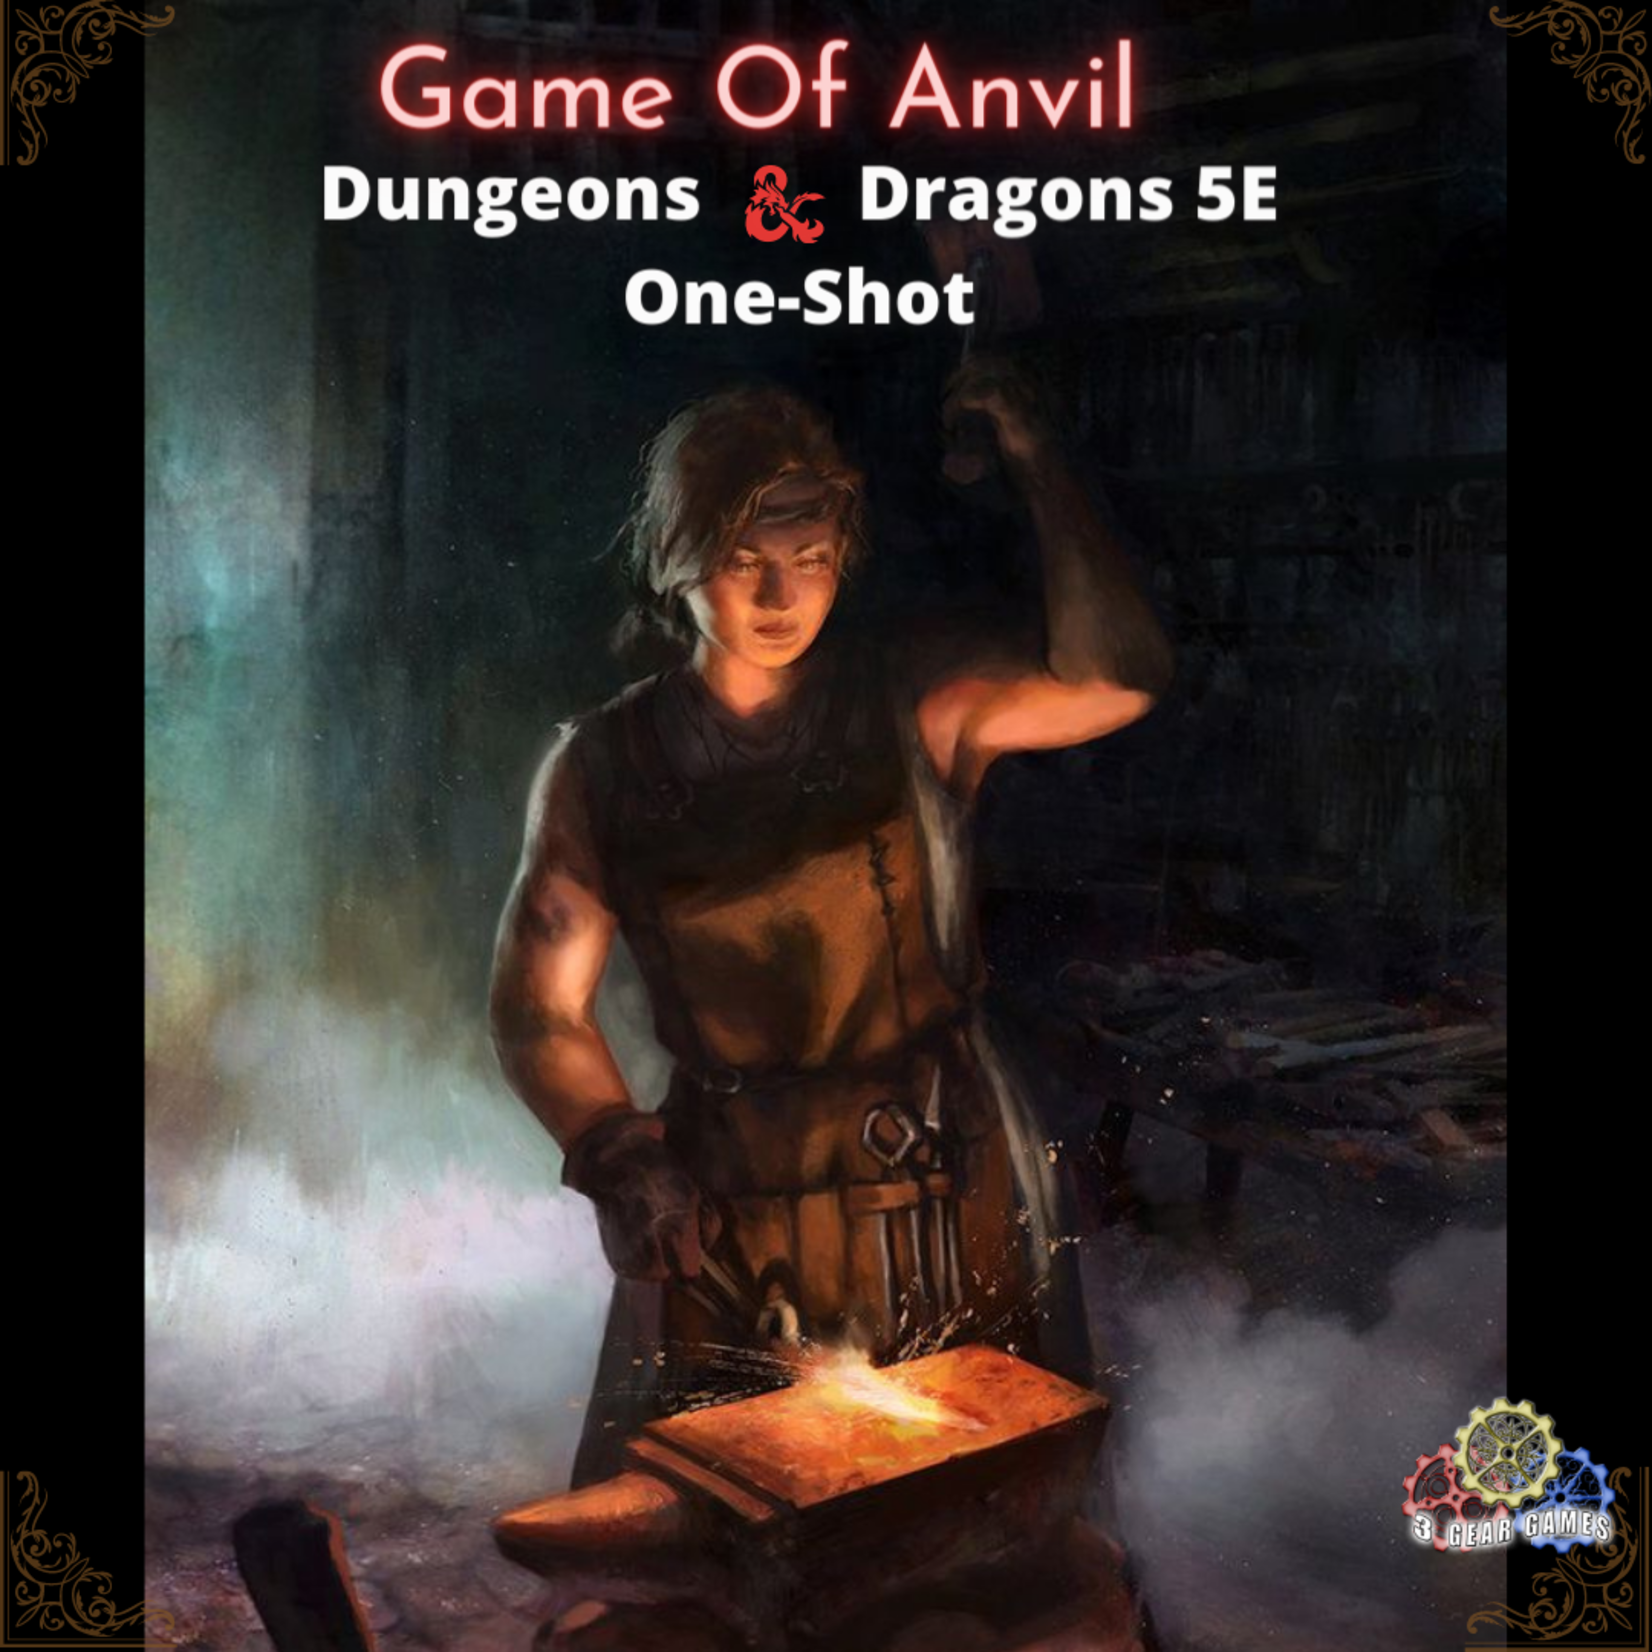 Dungeons and Dragons 5e One-Shot RPG - Game Of Anvil